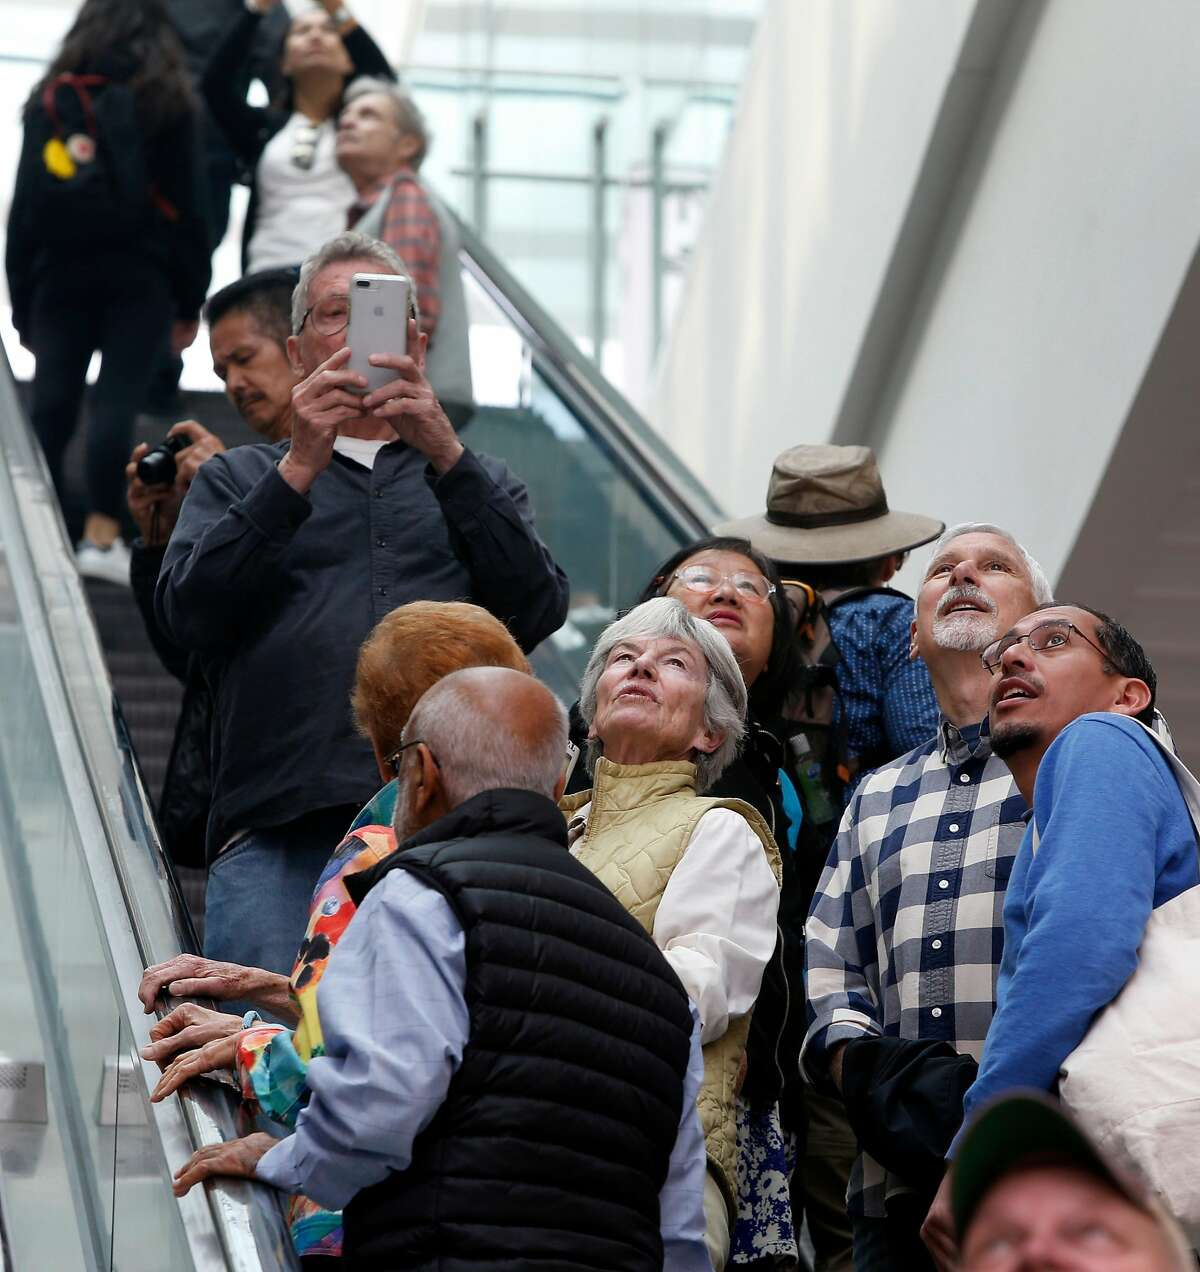 Visitors attending the grand opening of the Salesforce Transit Center gaze up at the oculus while ascending an escalator to the bus deck level in San Francisco, Calif. on Saturday, Aug. 11, 2018. Buses begin rolling through the terminal Sunday.